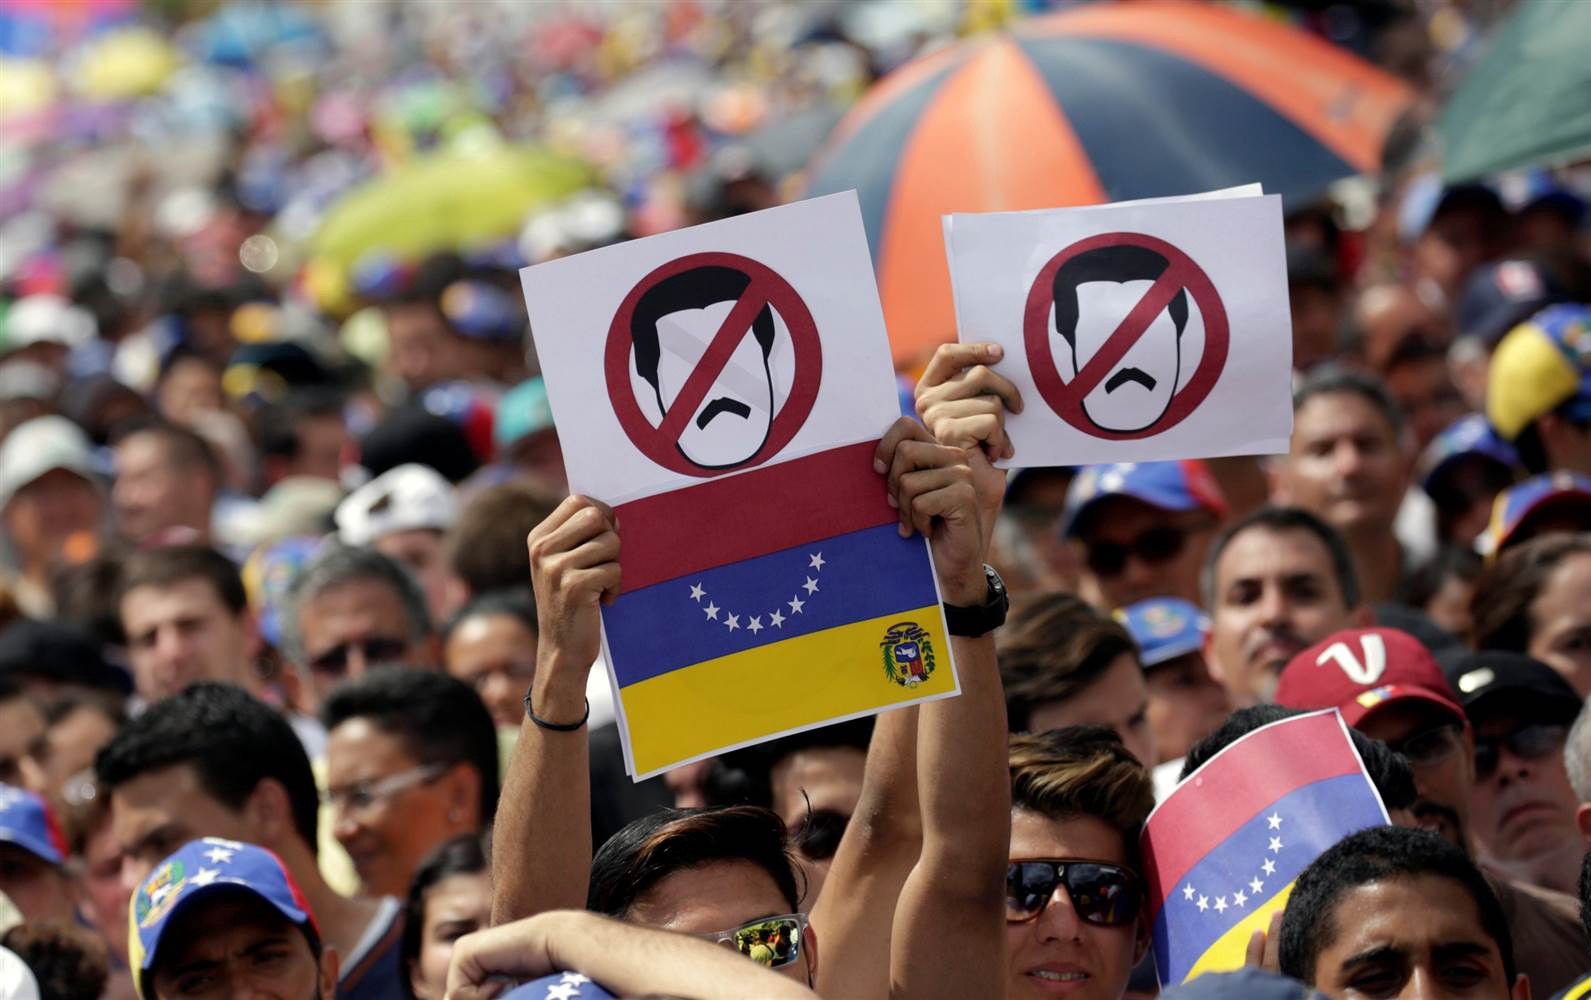 There are no Conditions for an Election in Venezuela